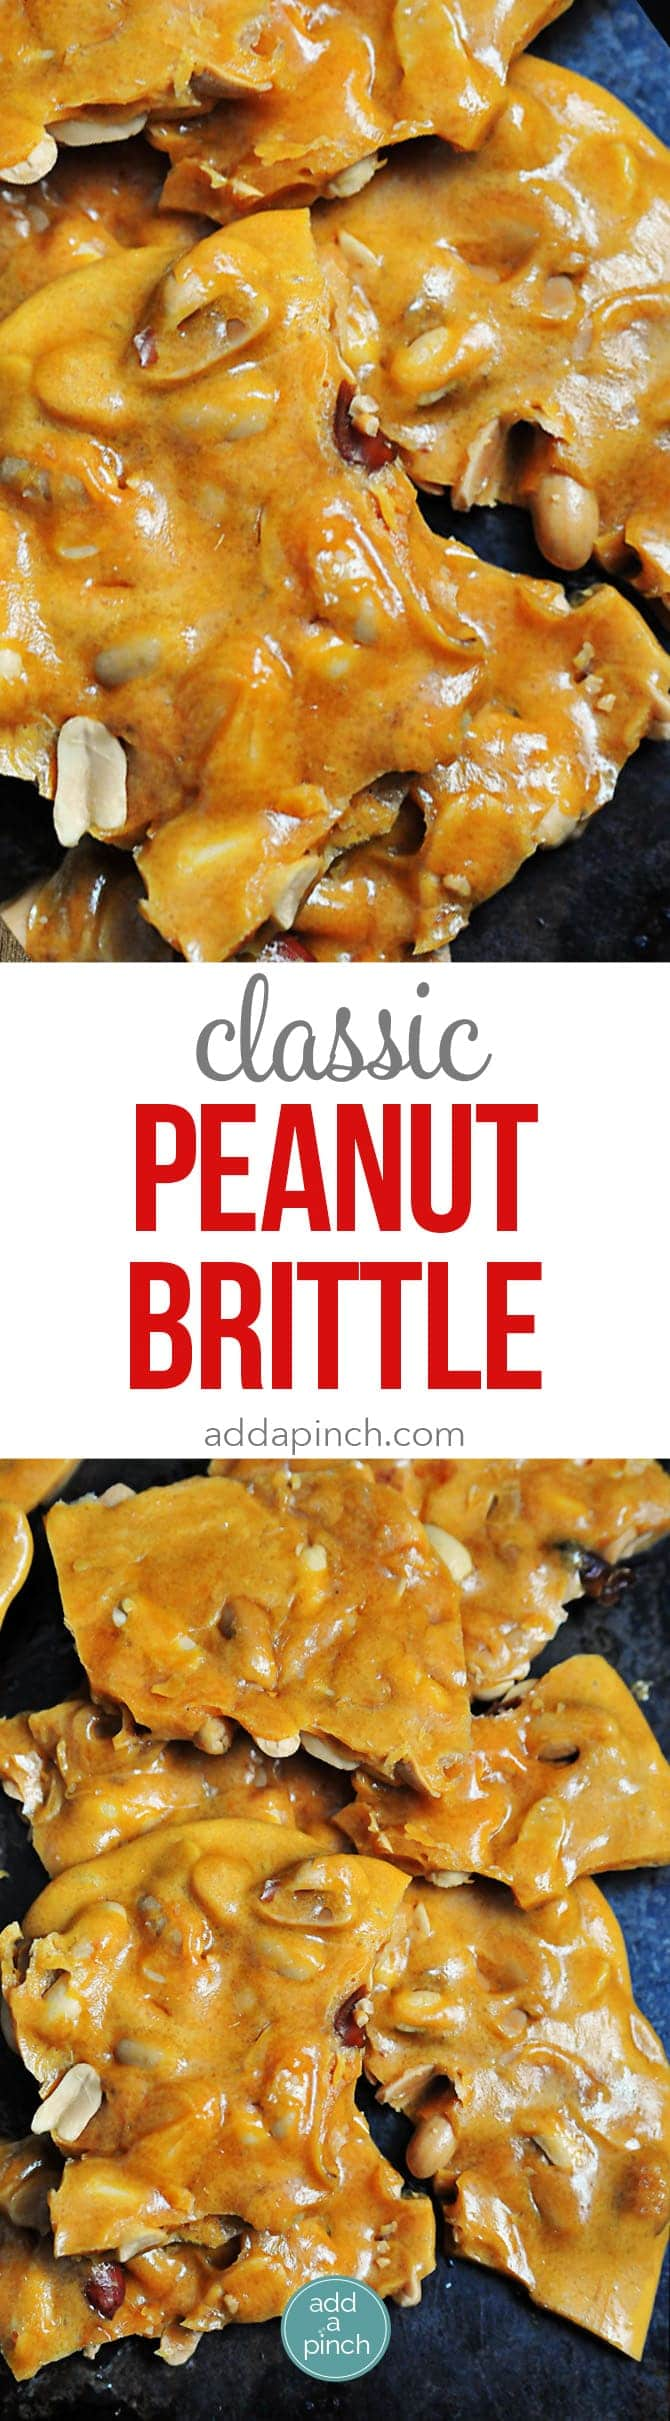 Peanut Brittle Recipe - Peanut Brittle is a delicious, old-fashioned, buttery treat. This peanut brittle recipe has been handed down through the generations and is always a favorite! // addapinch.com